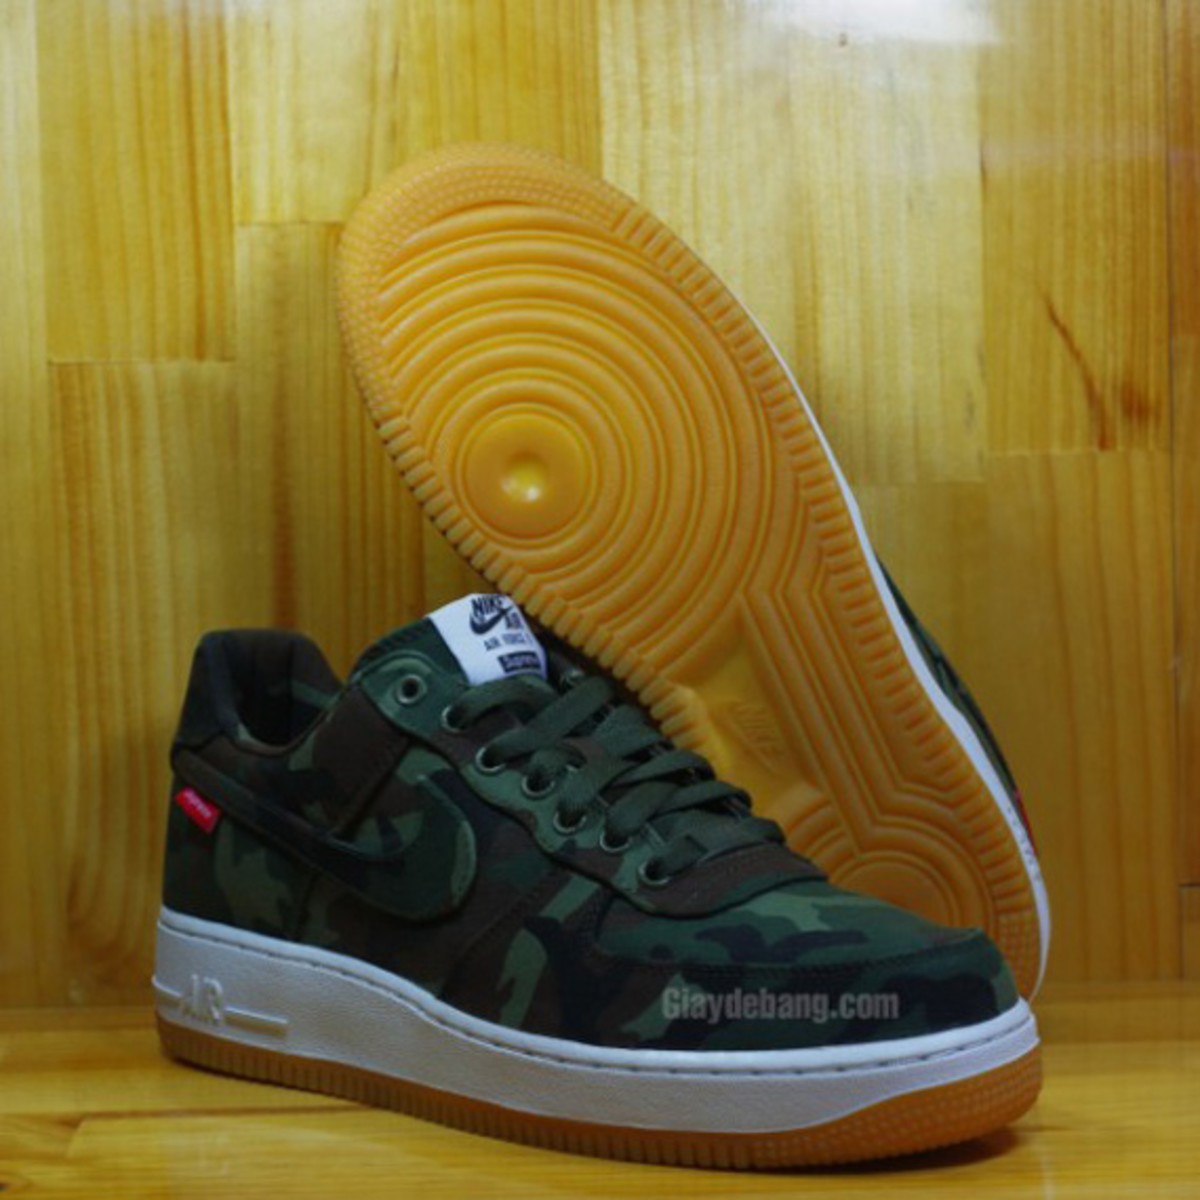 Supreme-Nike-Air-Force-1-Low-30th-Anniversary-Camo-01